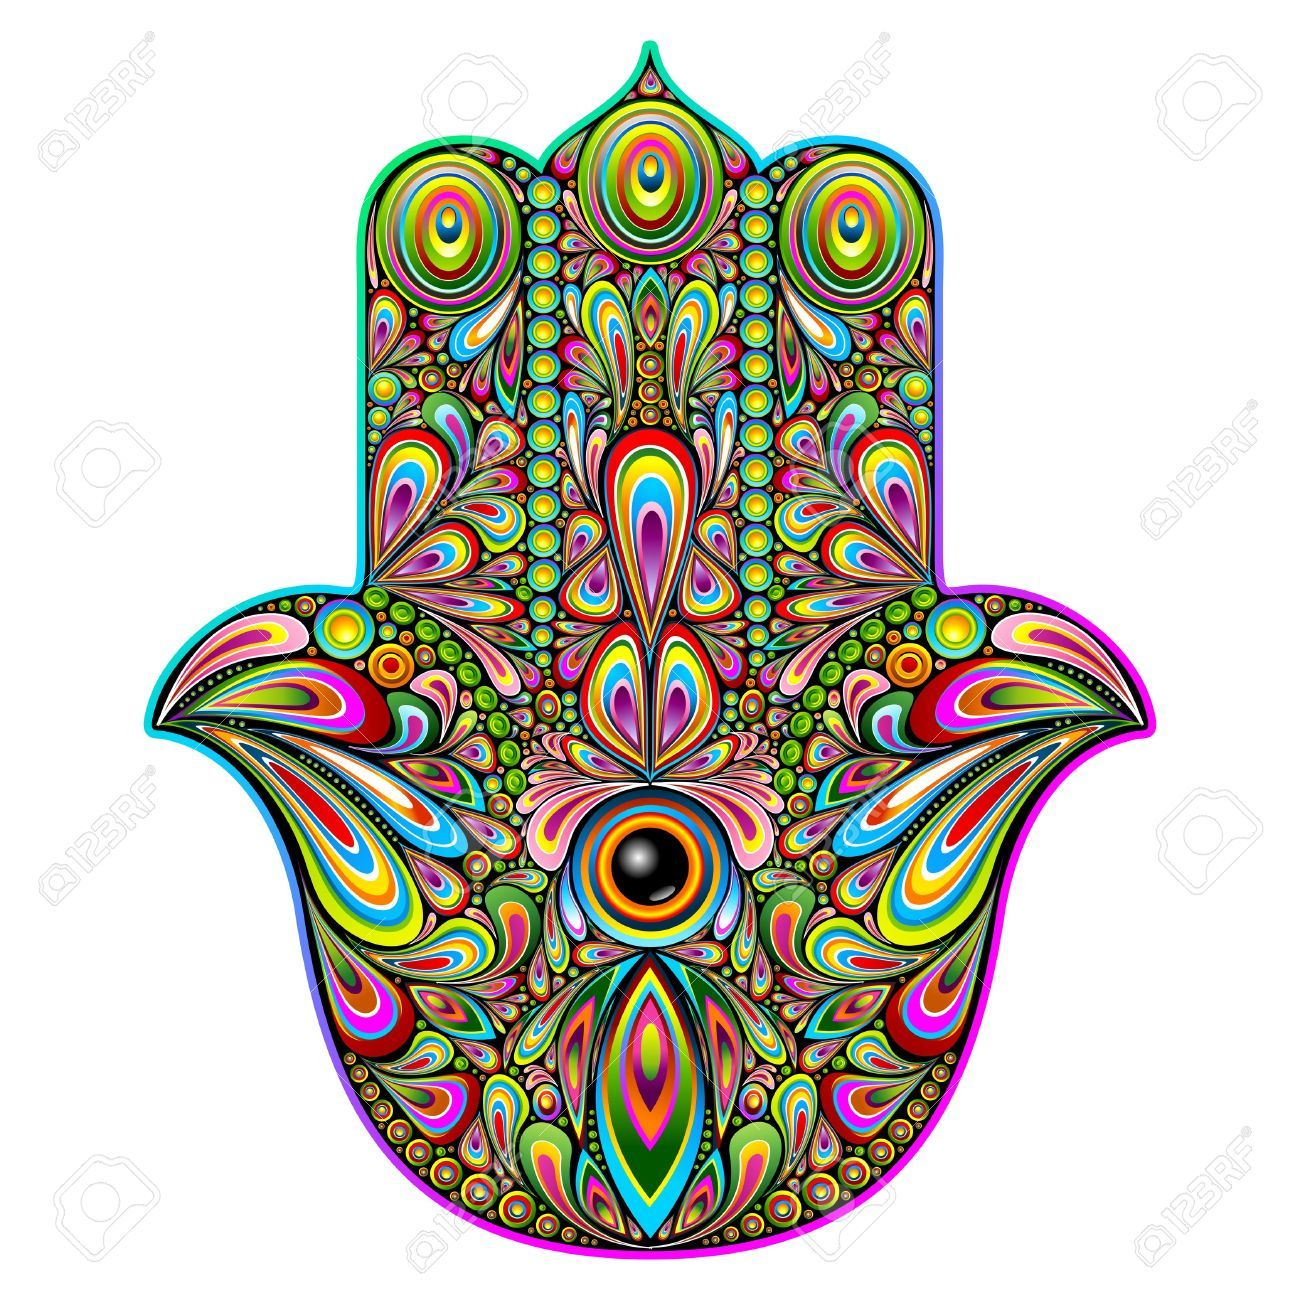 hamsa hand psychedelic art royalty free cliparts vectors and rh pinterest com Free Vector Flowers Free Sun Graphics